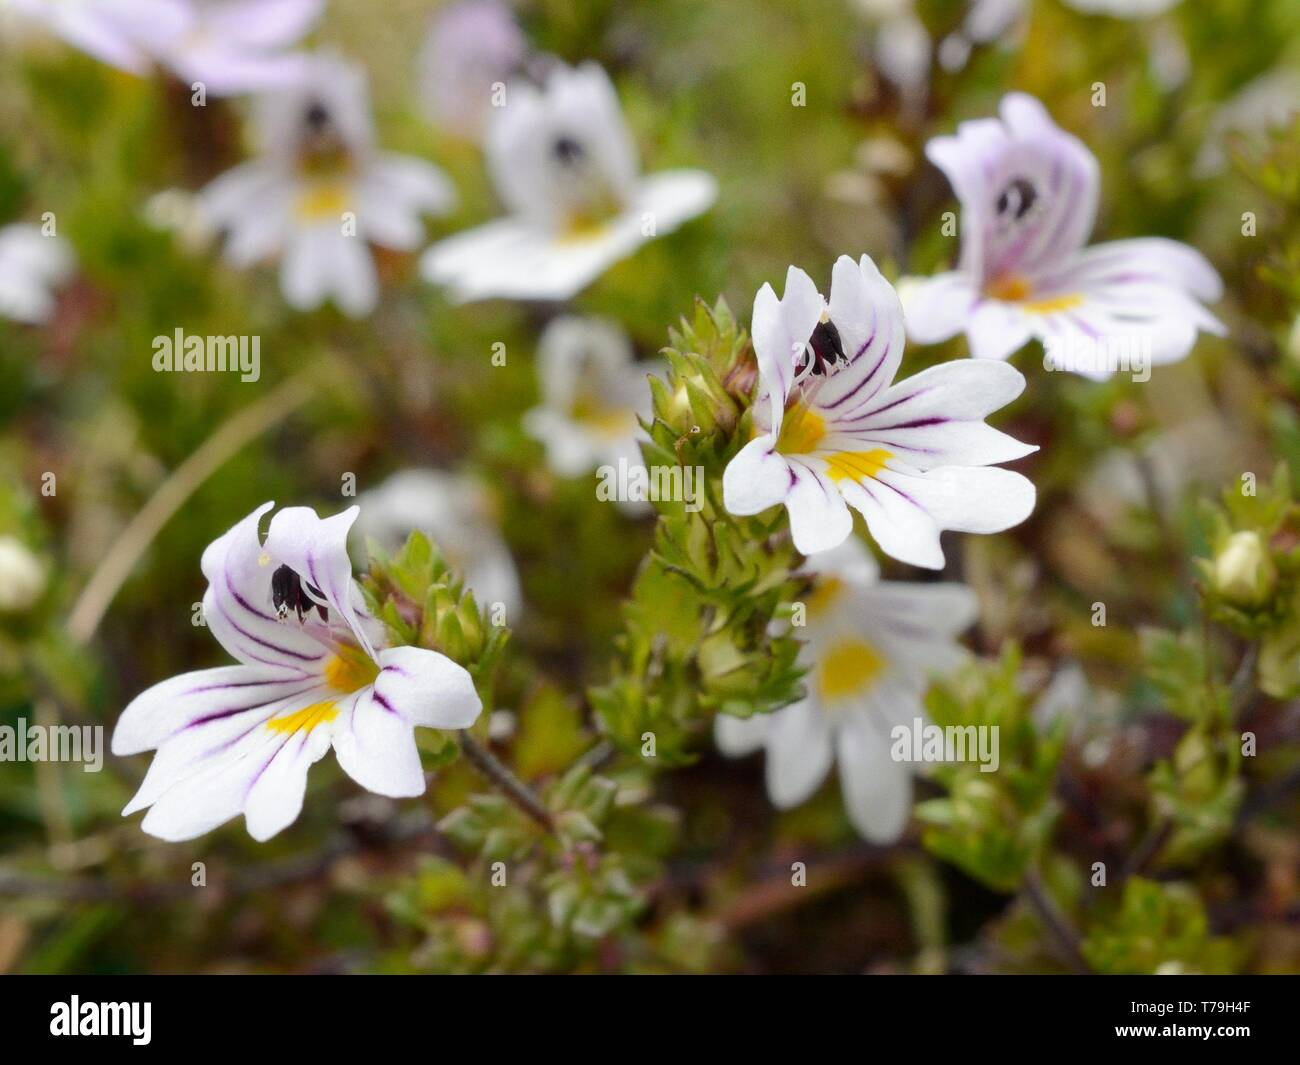 Alpine eyebright (Euphrasia alpina) flowering on montane pastureland, Covadonga, Picos de Europa, Asturias, Spain, August. - Stock Image